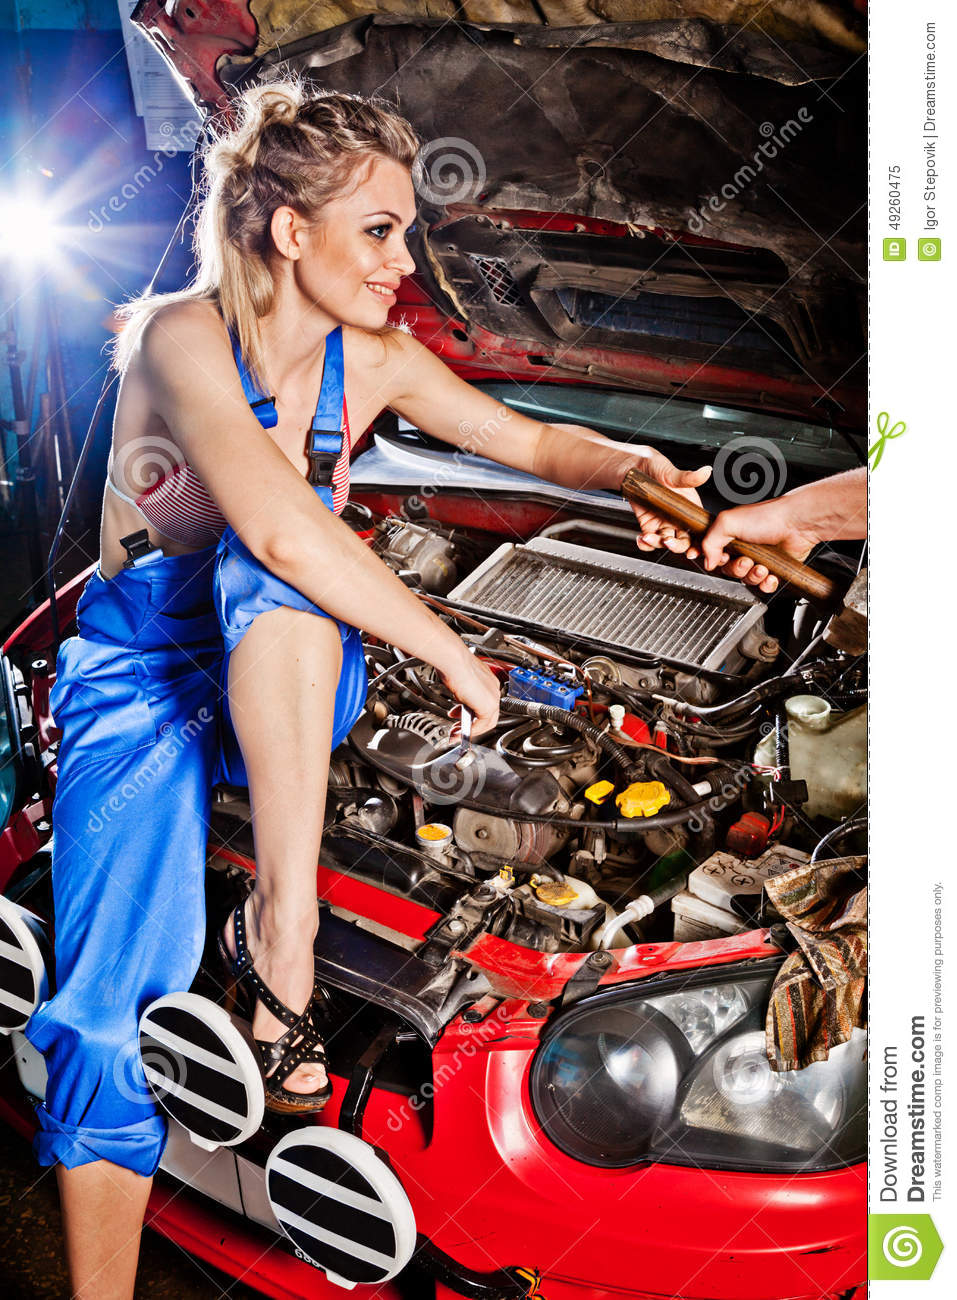 Stock Photo Man Gives Girl Tool To Repair Car Working Transmission Image49260475 furthermore What Is A Tap And Die Set And How Do I Use Them likewise Royalty Free Stock Photo Young Woman Checking Out Flat Tyre Her Car Attractive Sexy Slender As Kneels Road Holding Wheel Spanner Image40625075 as well Solid Brass Quick Change Hose Fittings Gp further Stock Photo Two Female Auto Mechanic Repairing Car Working Transmission Image45208903. on female maintenance repair